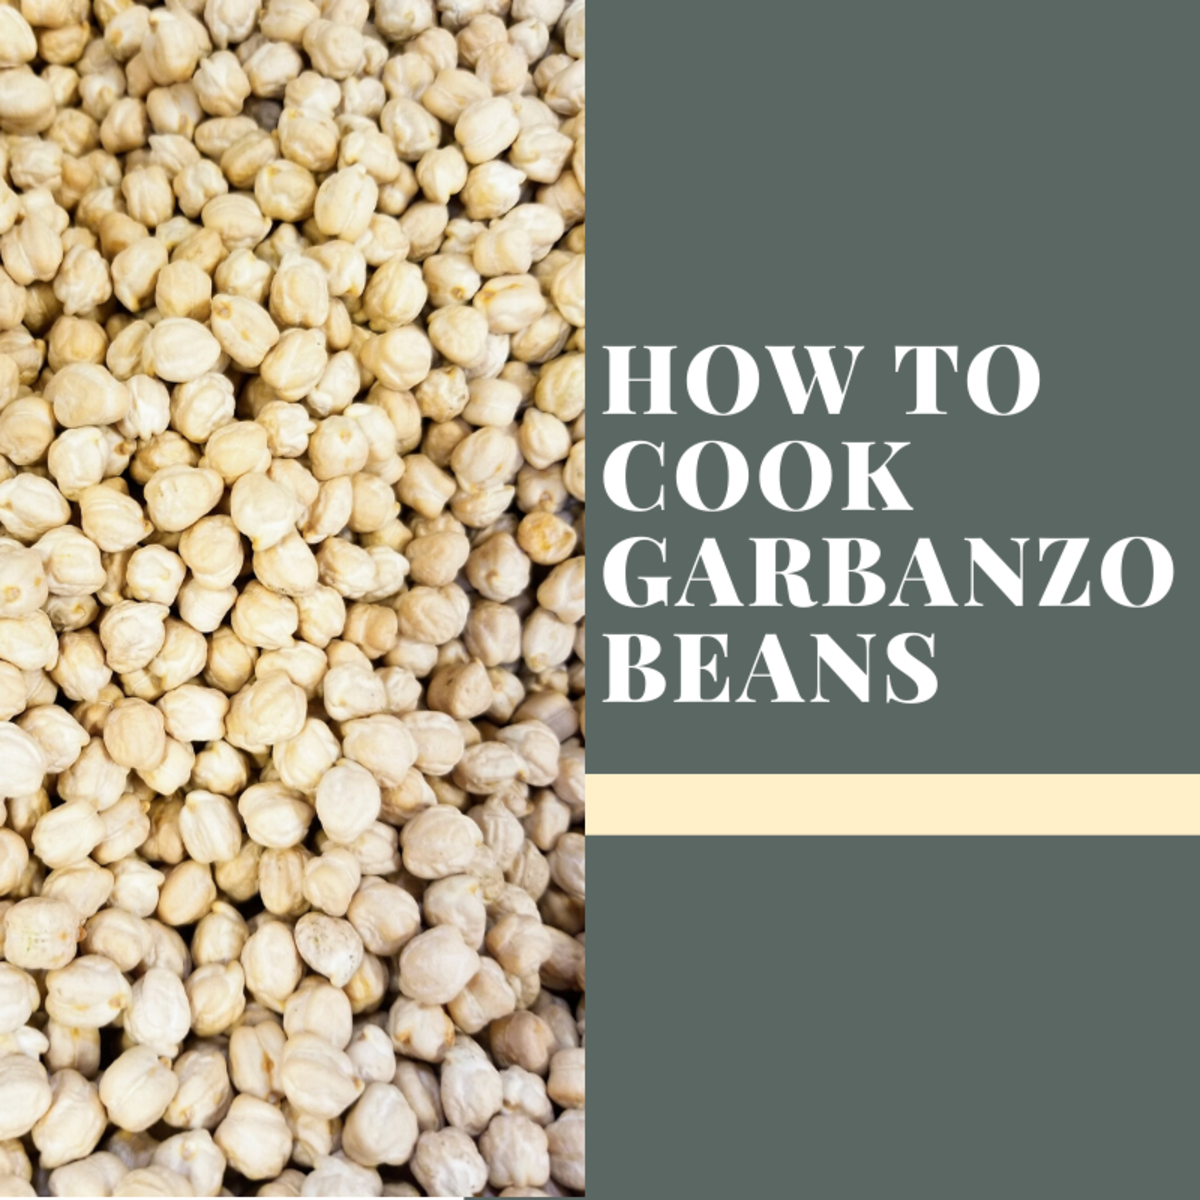 If cooked right, garbanzo beans are a delicious treat. Read on to learn how to cook them right.